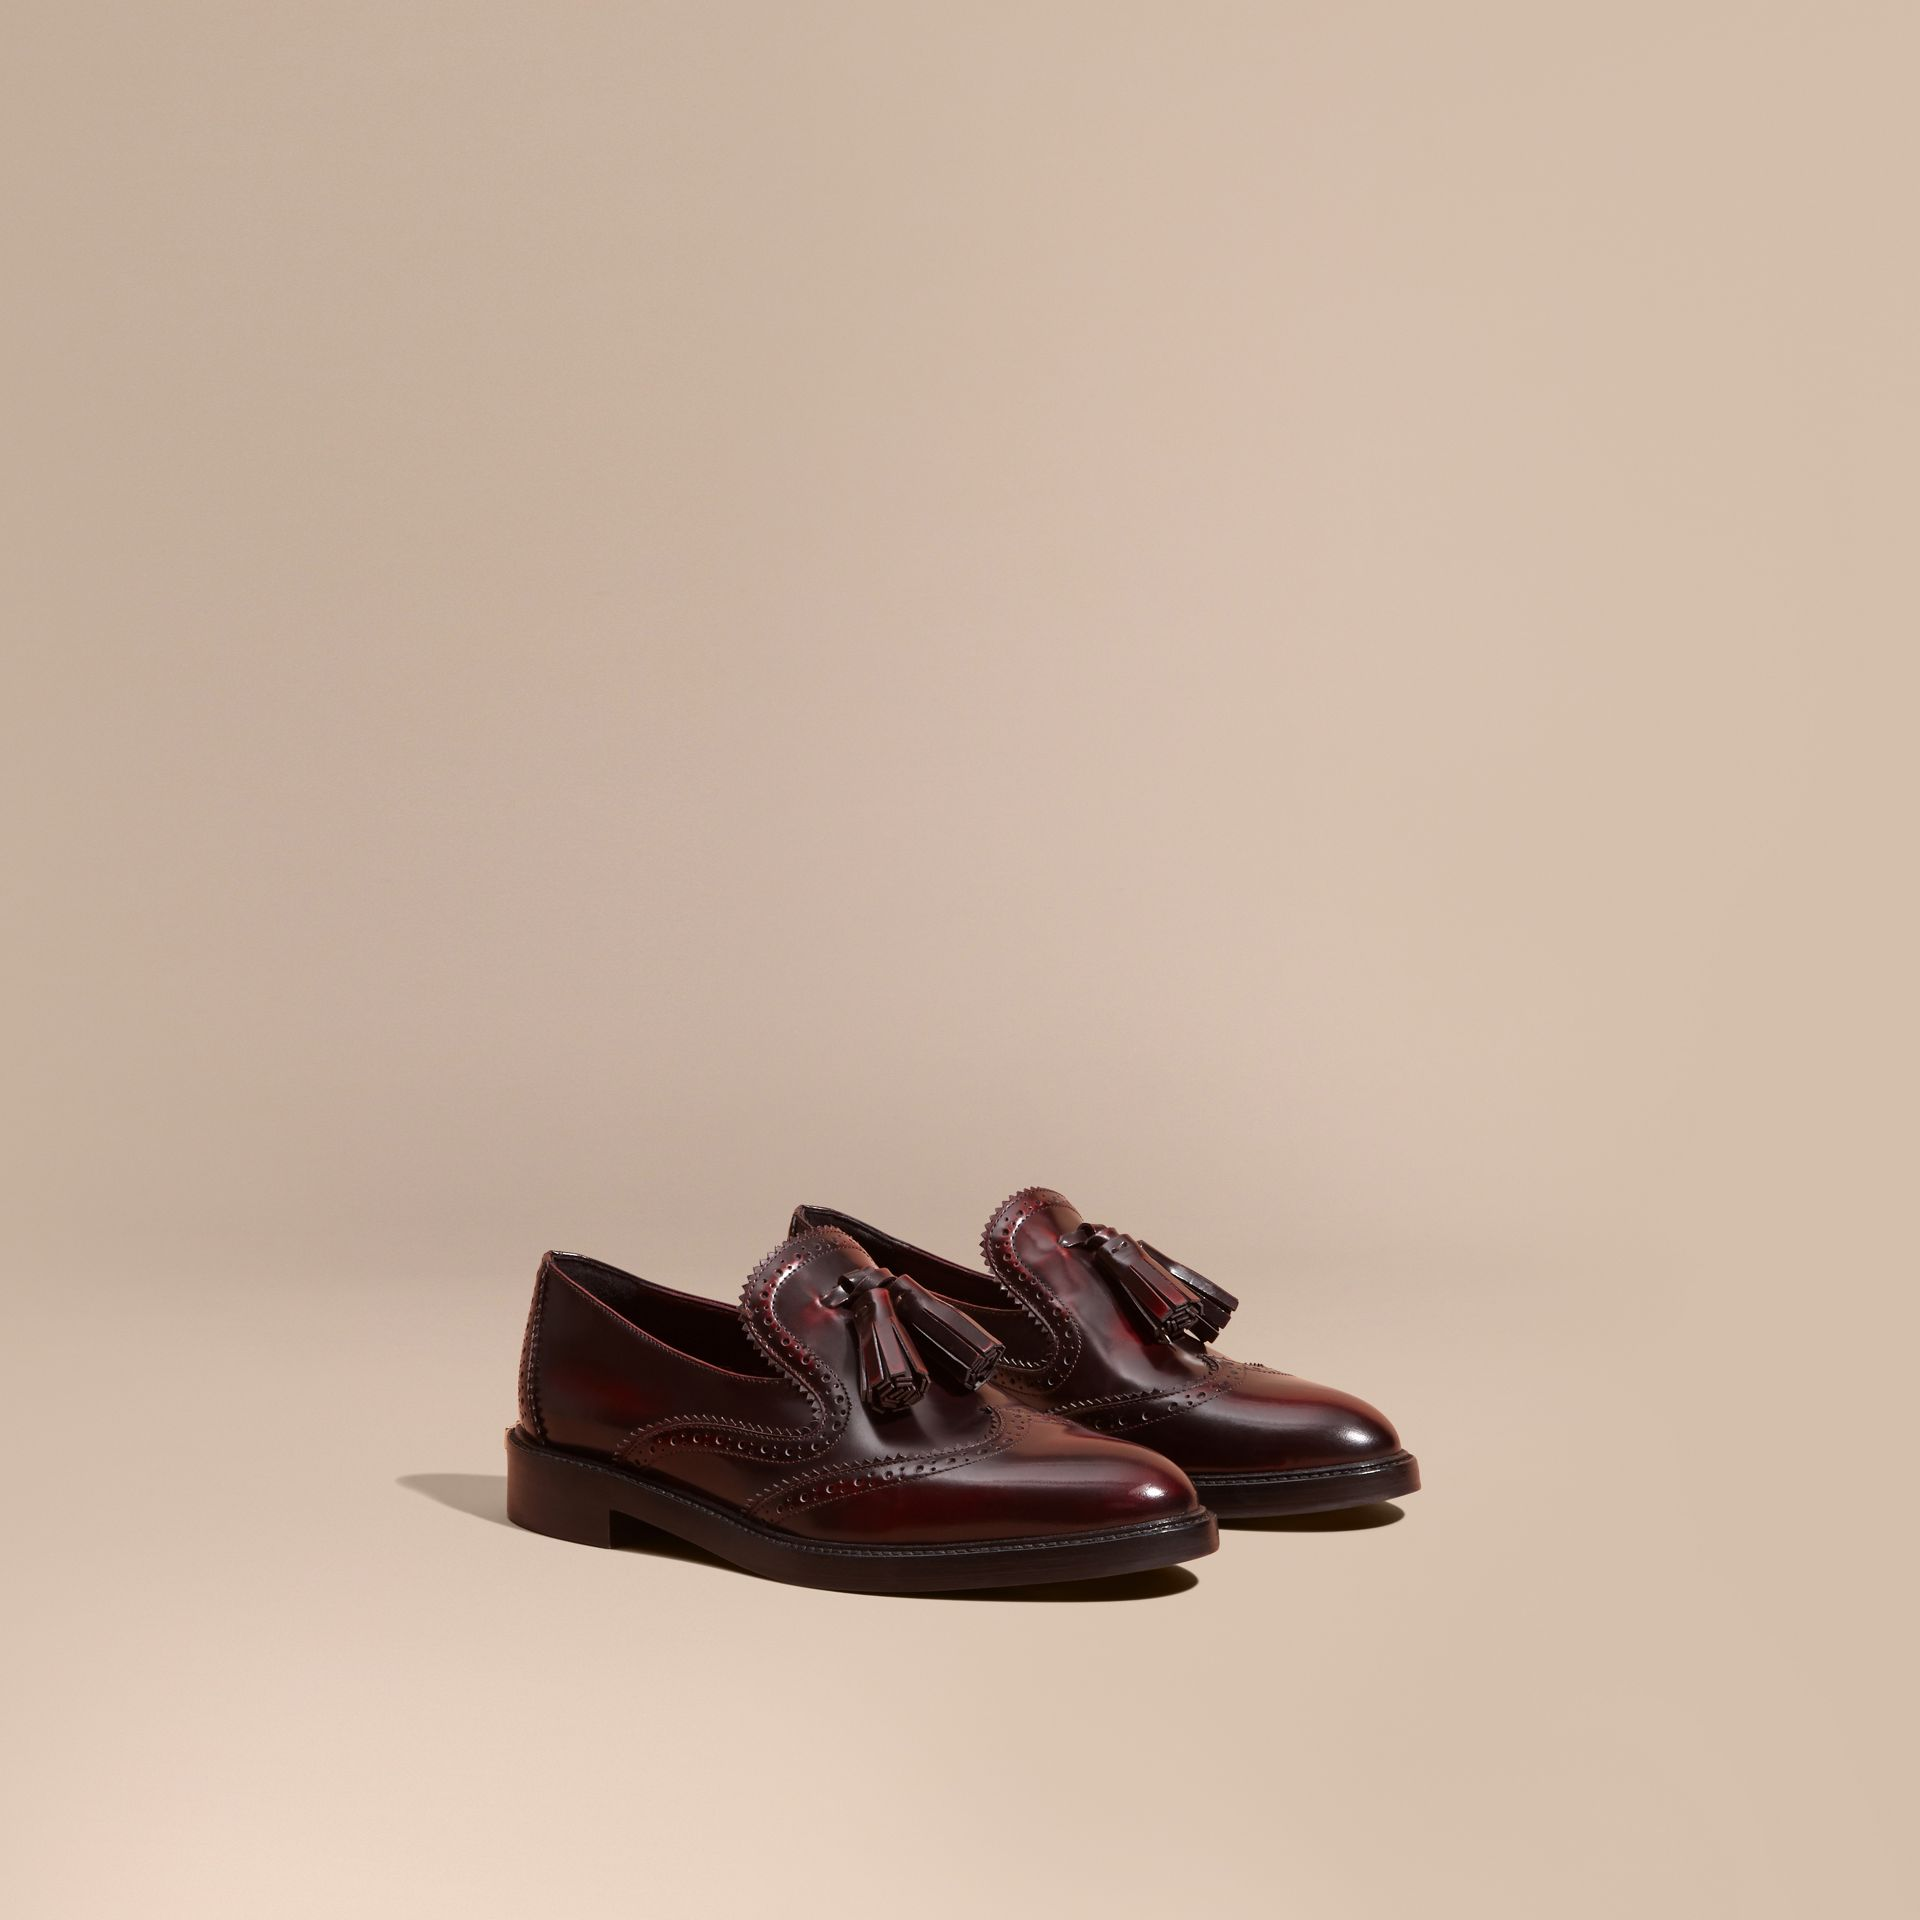 Bordeaux Dégradé Tassel Detail Leather Loafers - gallery image 1